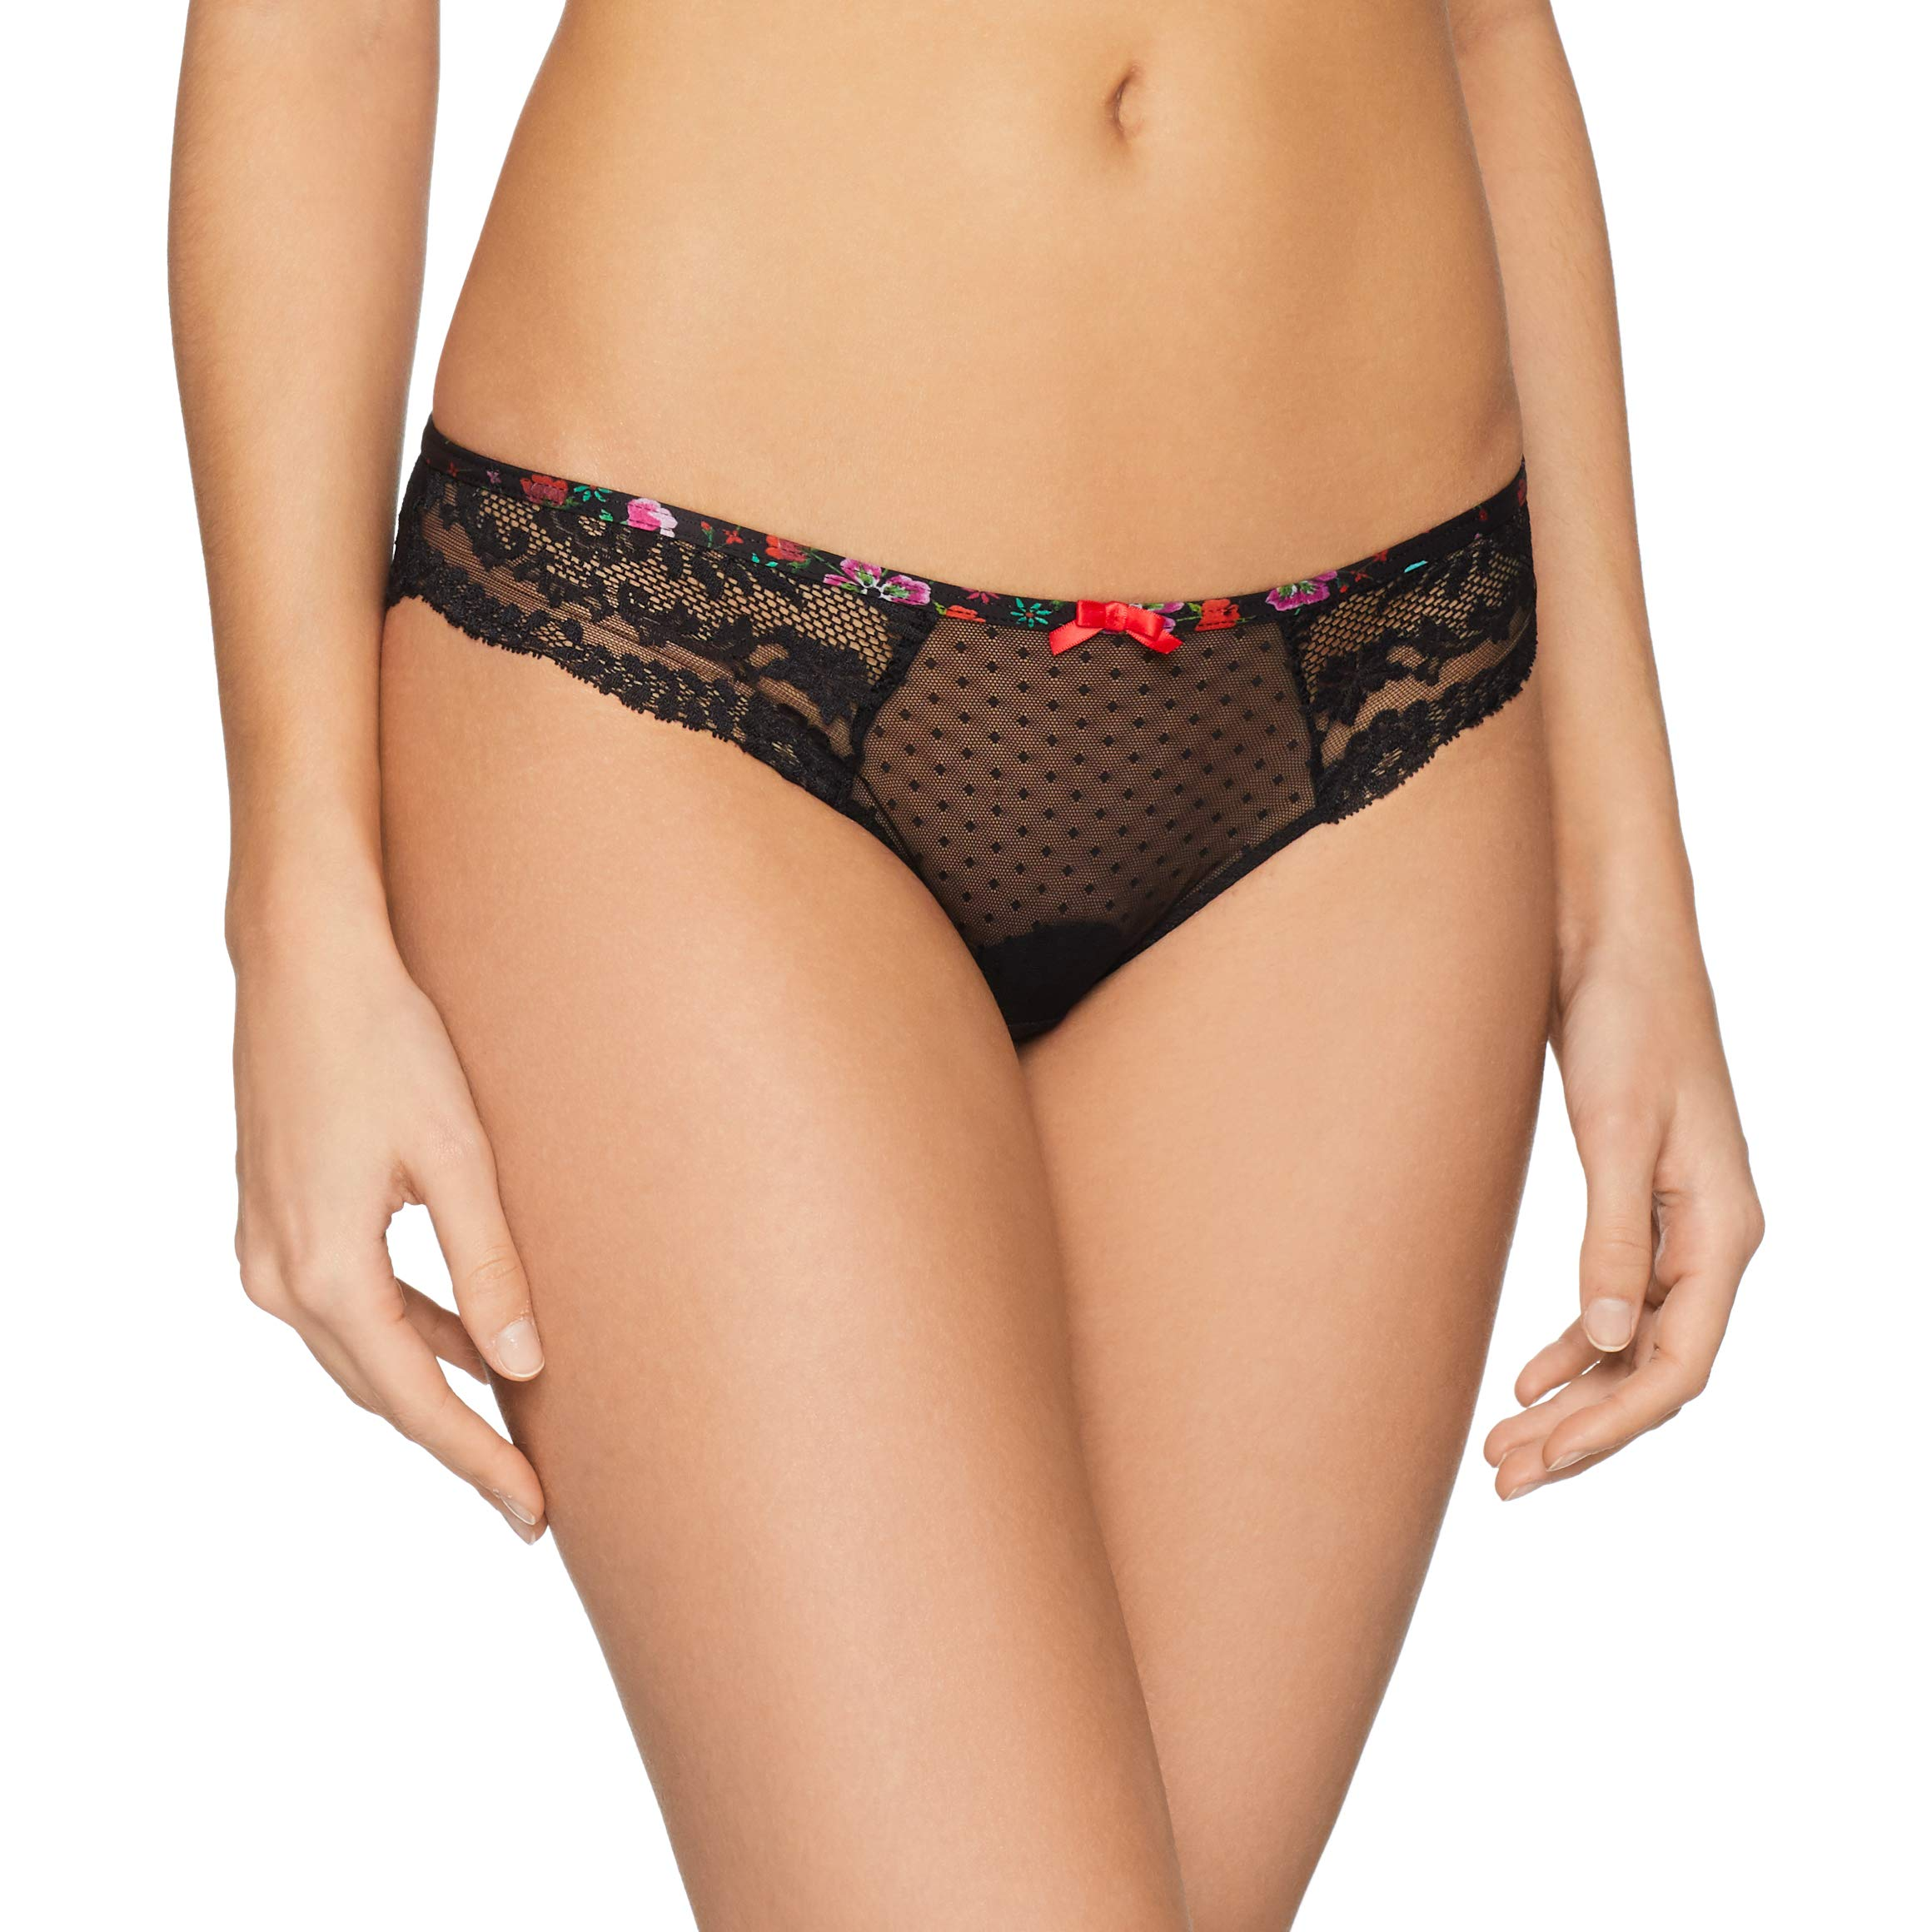 Extase Aubade BrésilienneNoir Culotte Magi44taille Fabricant 5Femme Delicate Magie 7gIyYvbf6